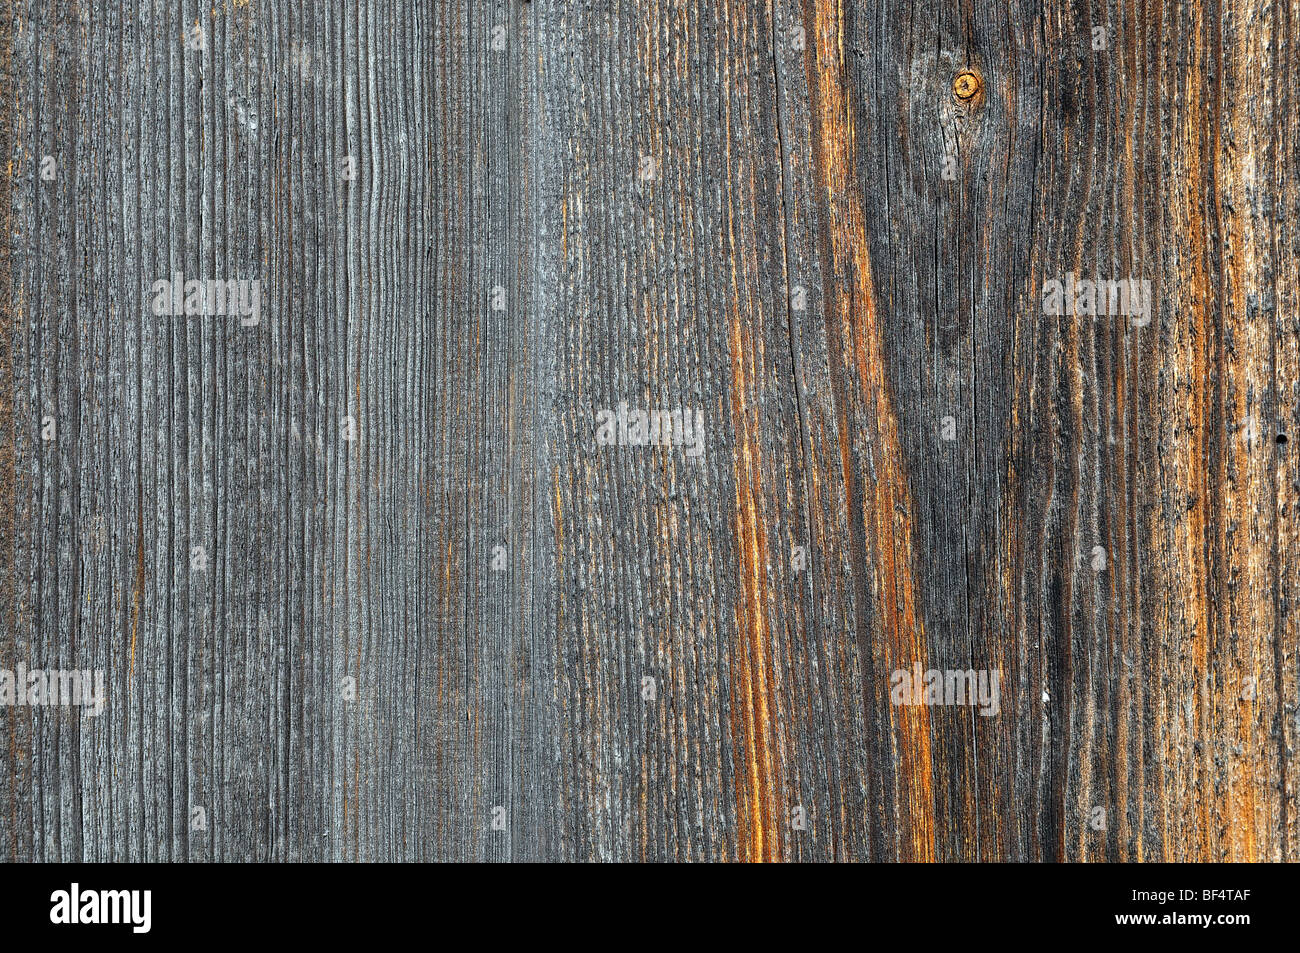 Old wooden texture - can be used as background - Stock Image